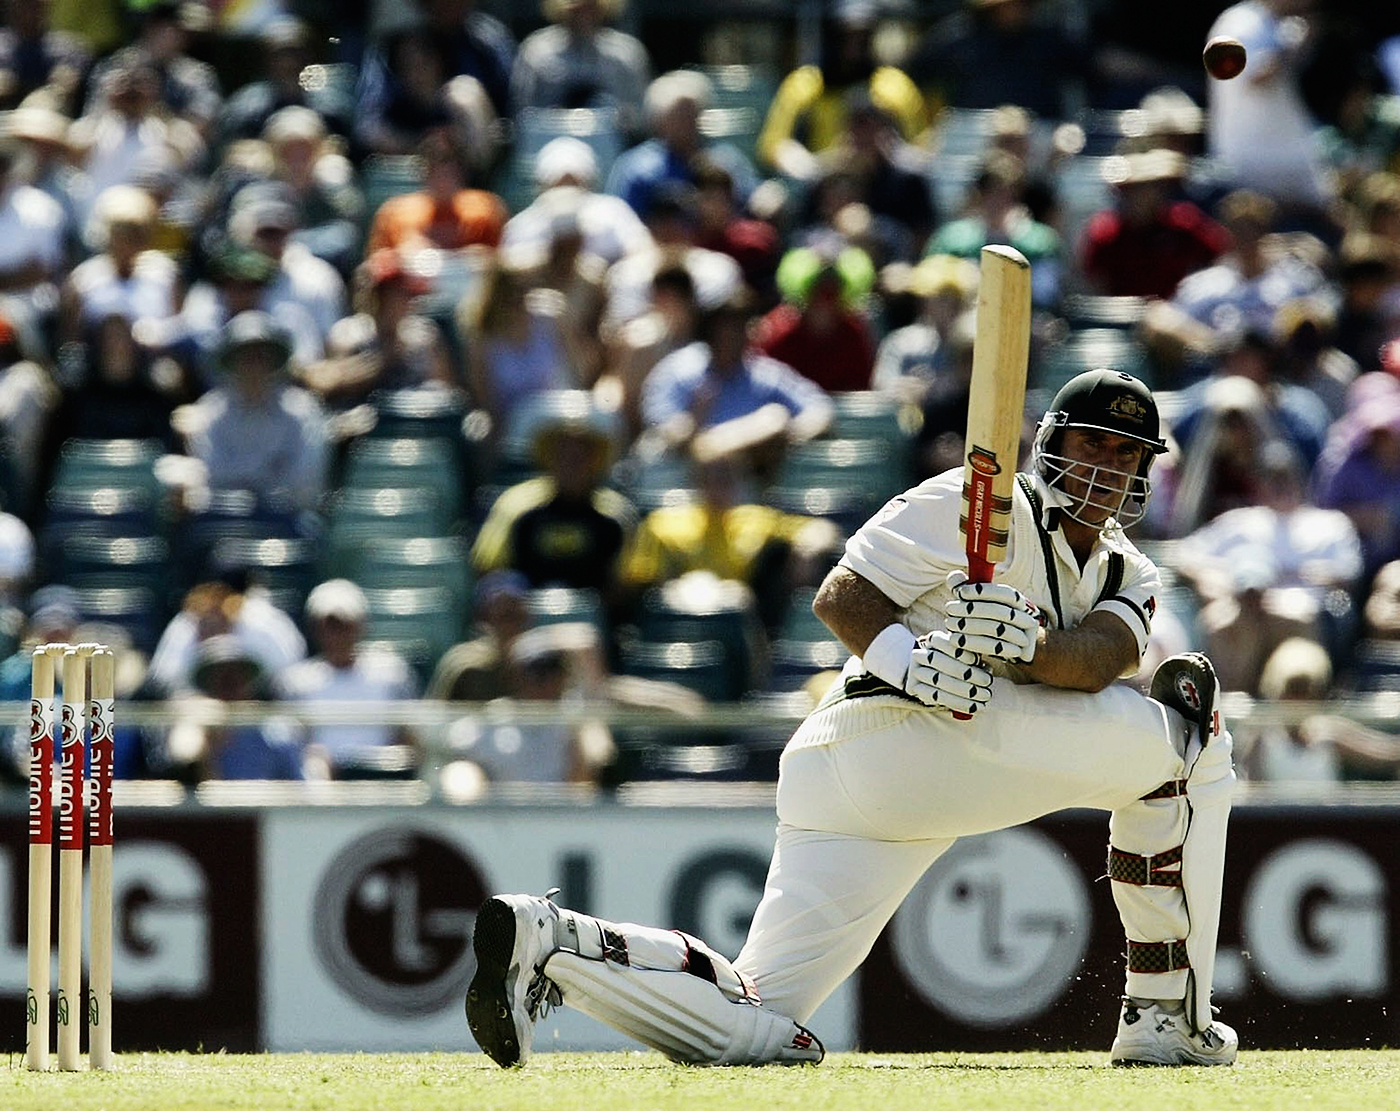 Matthew Hayden on his way to his hundred at the WACA